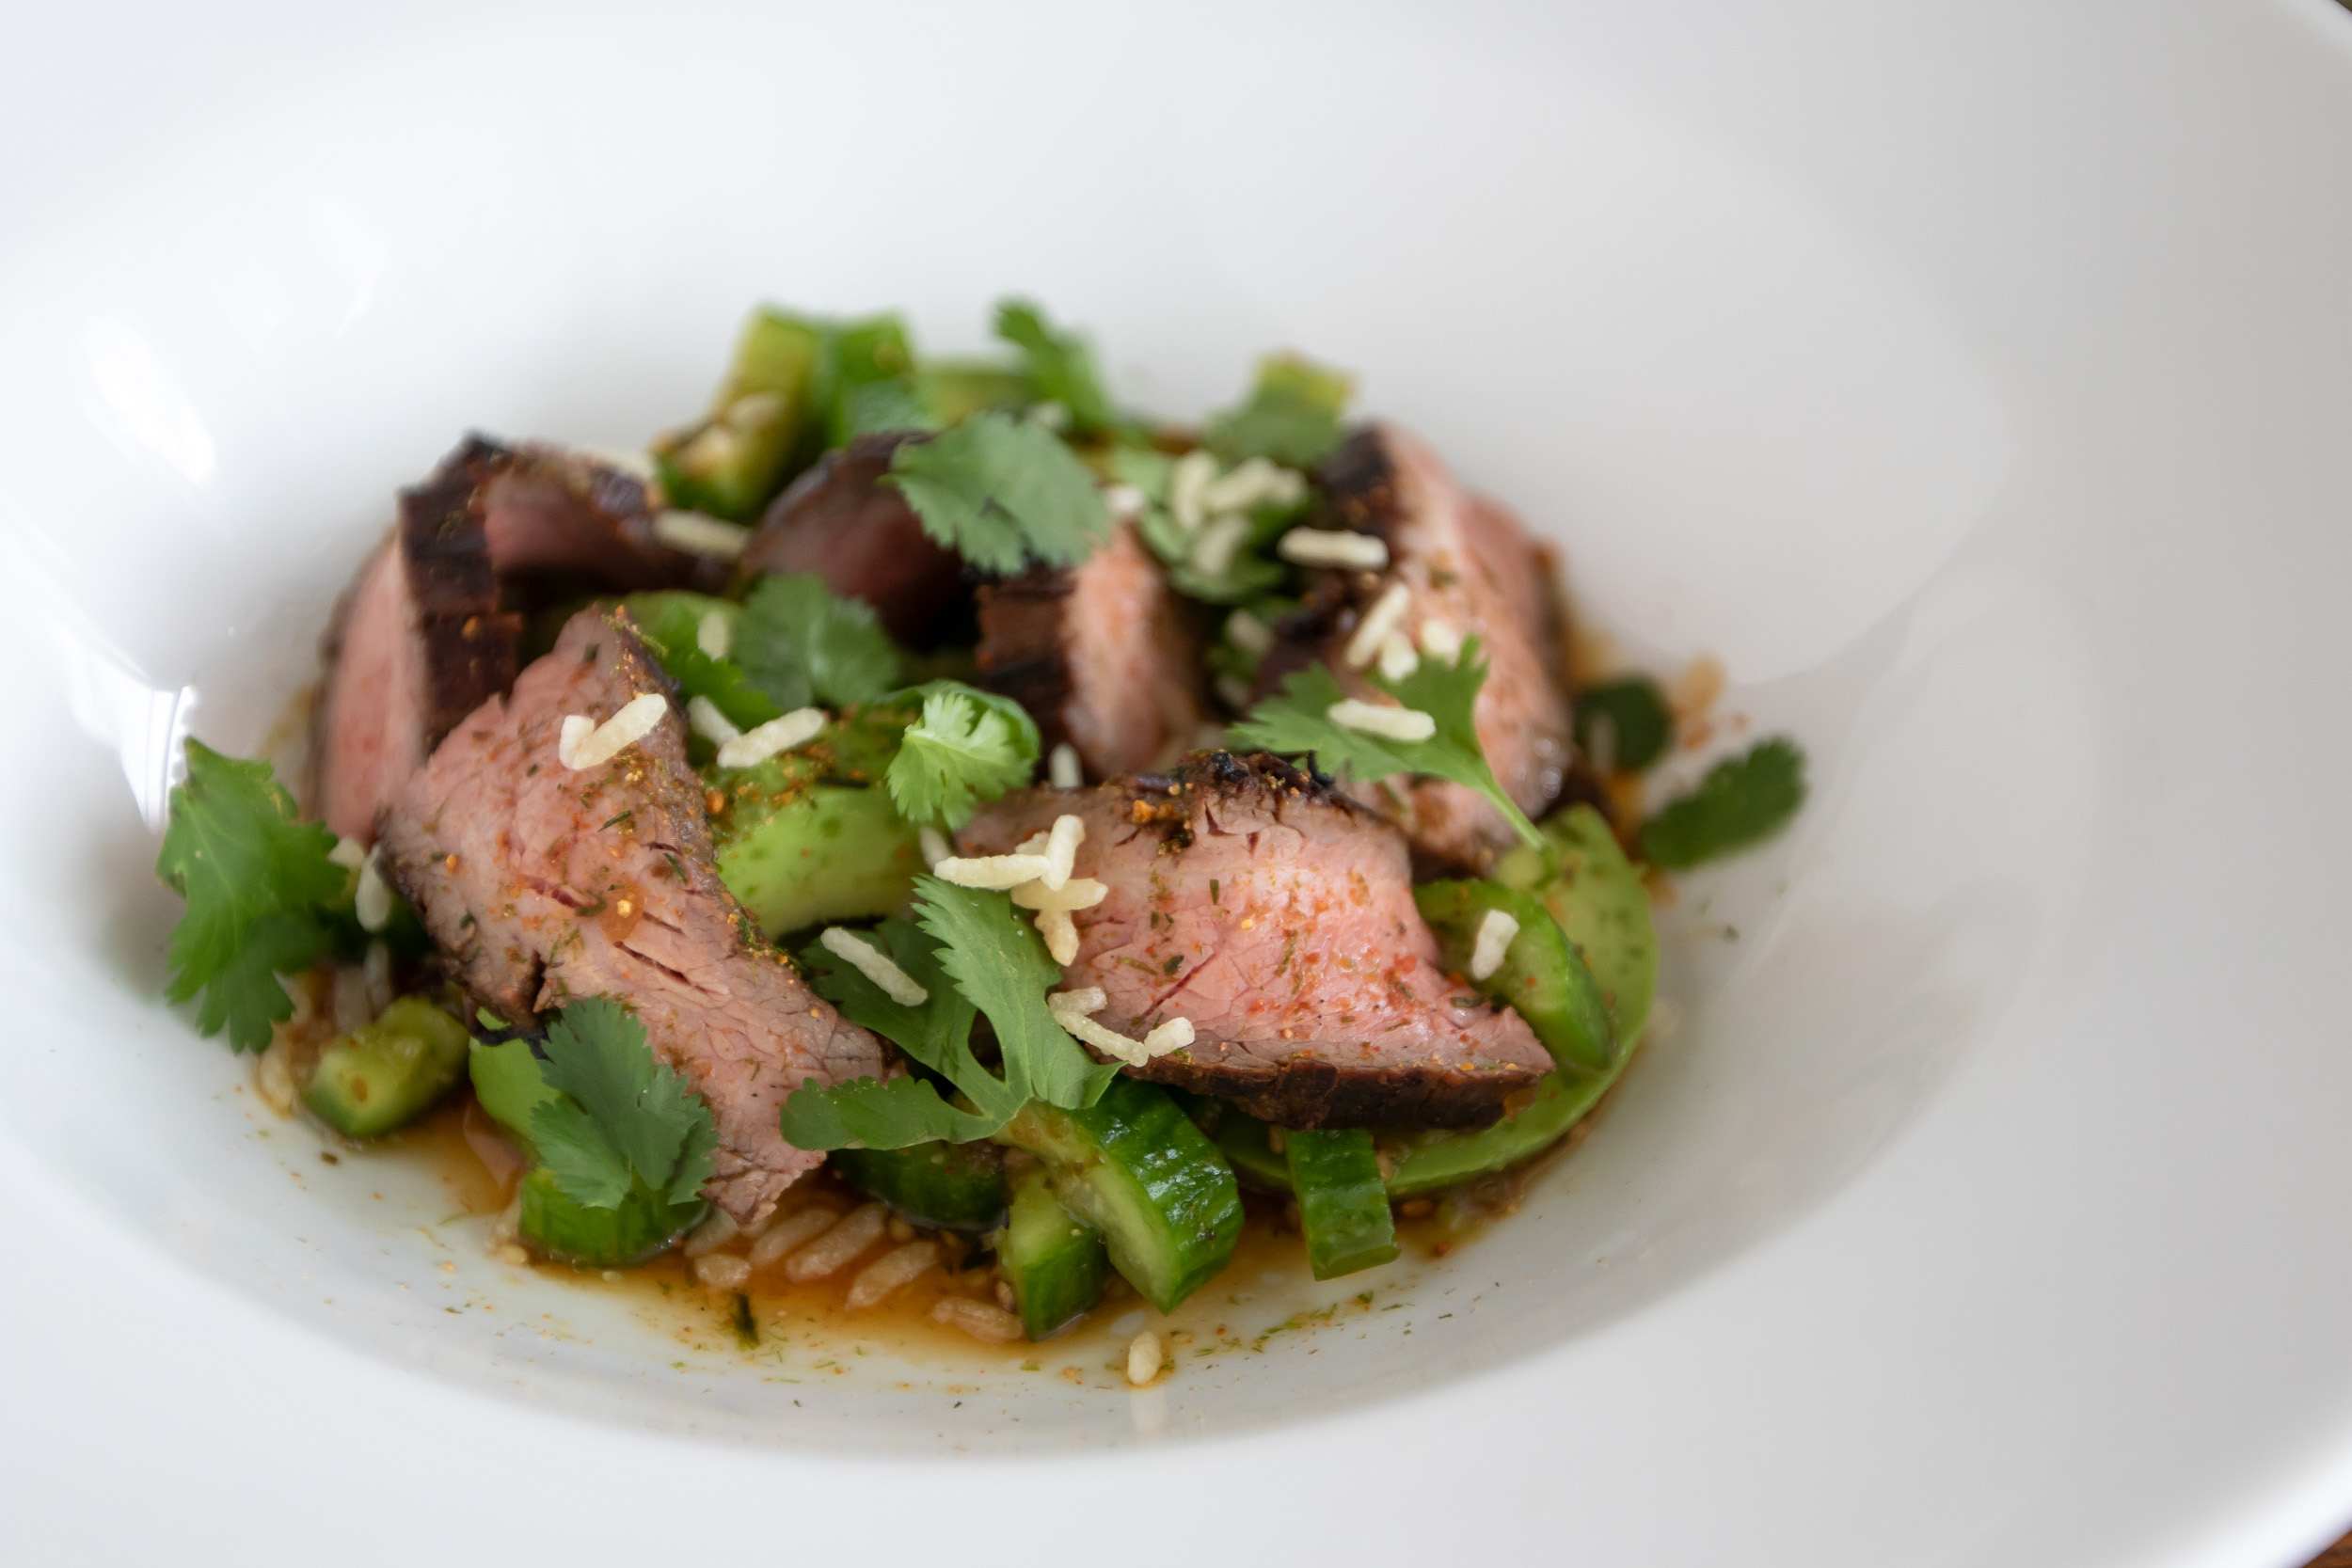 Soy Dressing on Grilled Flank Steak & Avocado Salad with Cucumbers and Puffed Jasmine Rice | Photo by  Stephanie Cornell